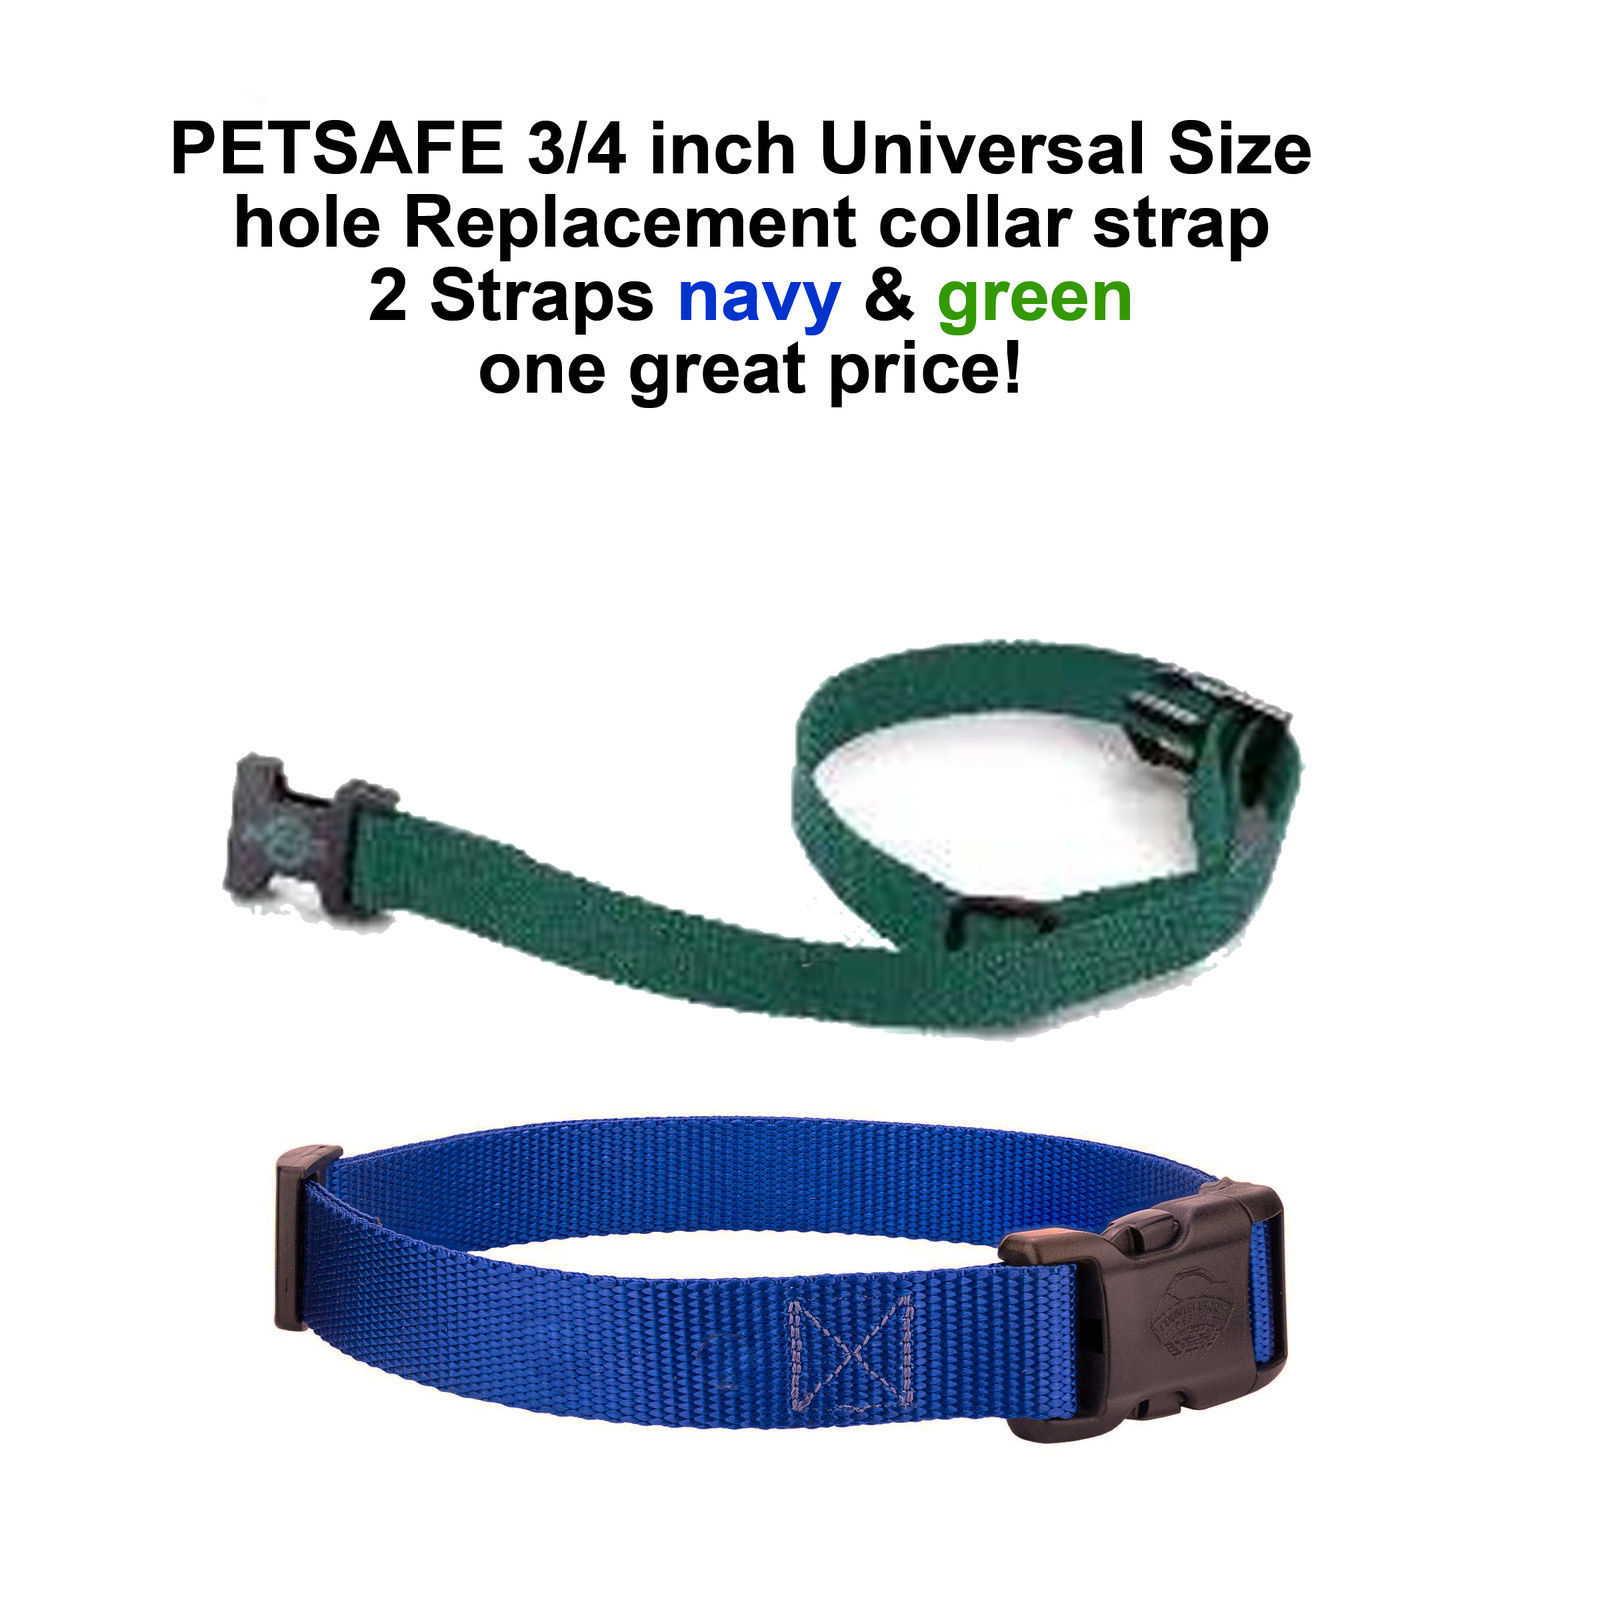 3/4 inch Universal Size Replacement collar strap- 2 Straps Navy & Green